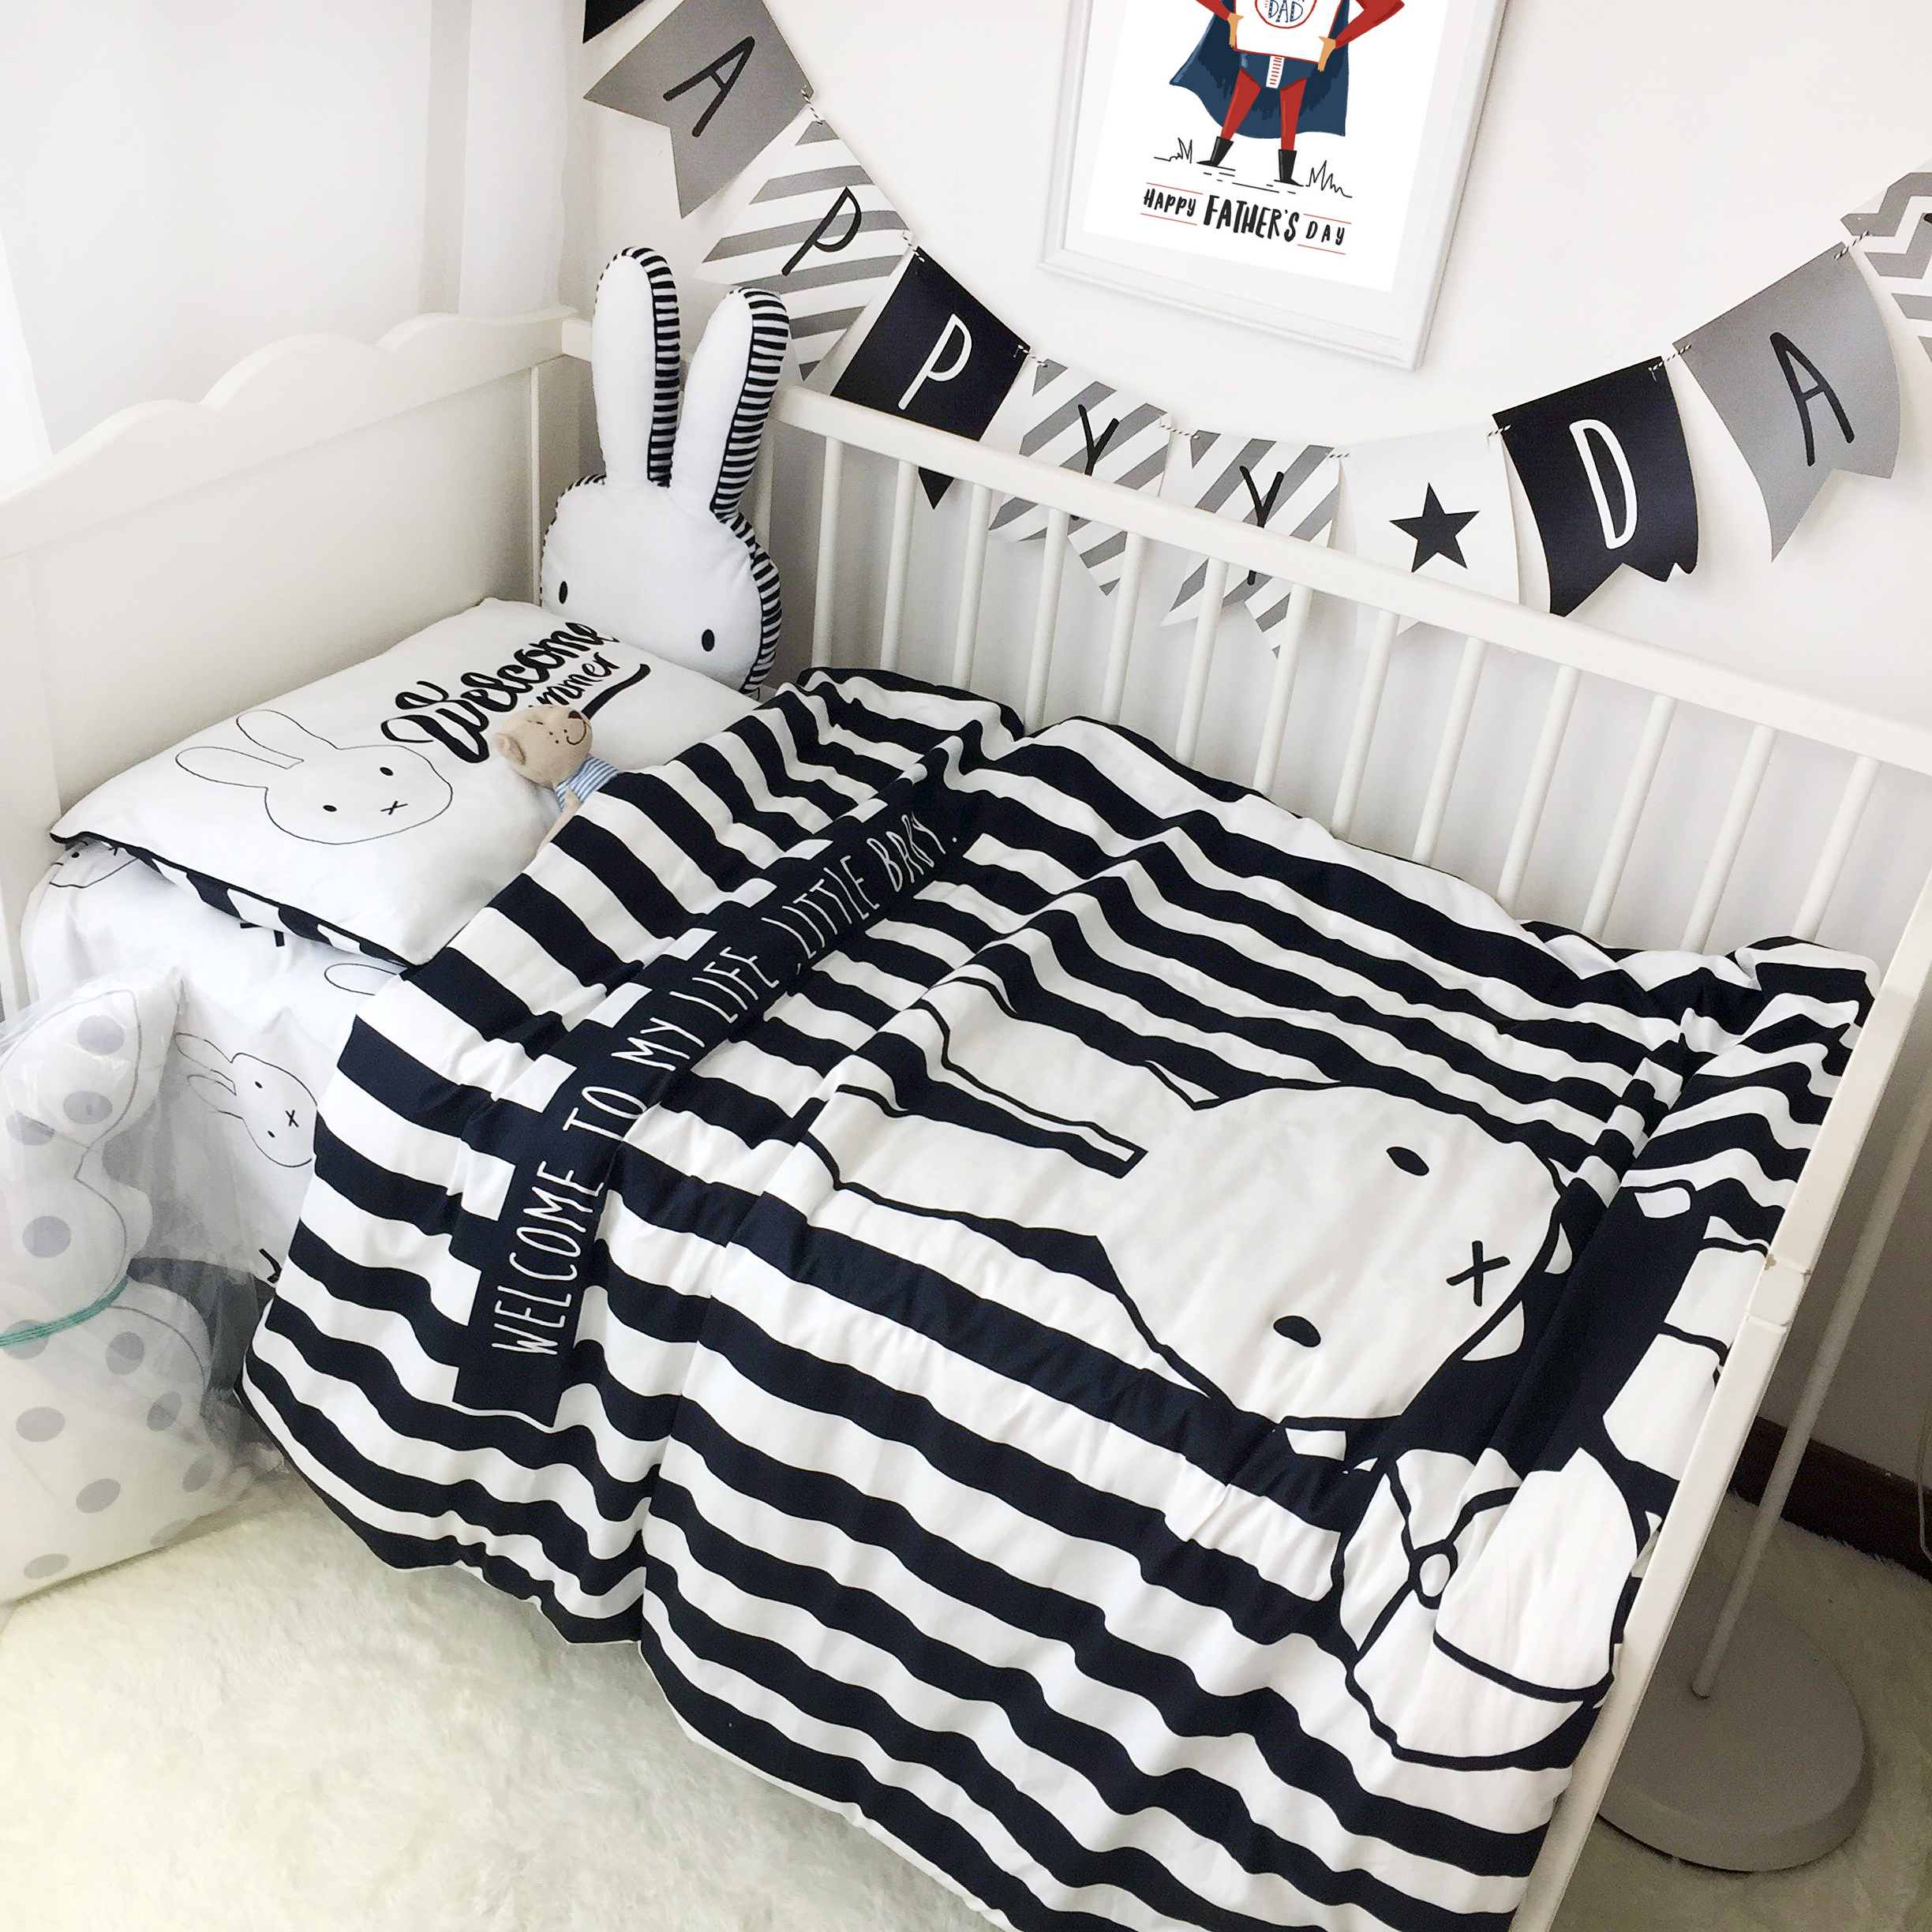 striped bedding bedroom set cot scenic of and ballerina soft on linen the sets crib black polka pink white dot sheets